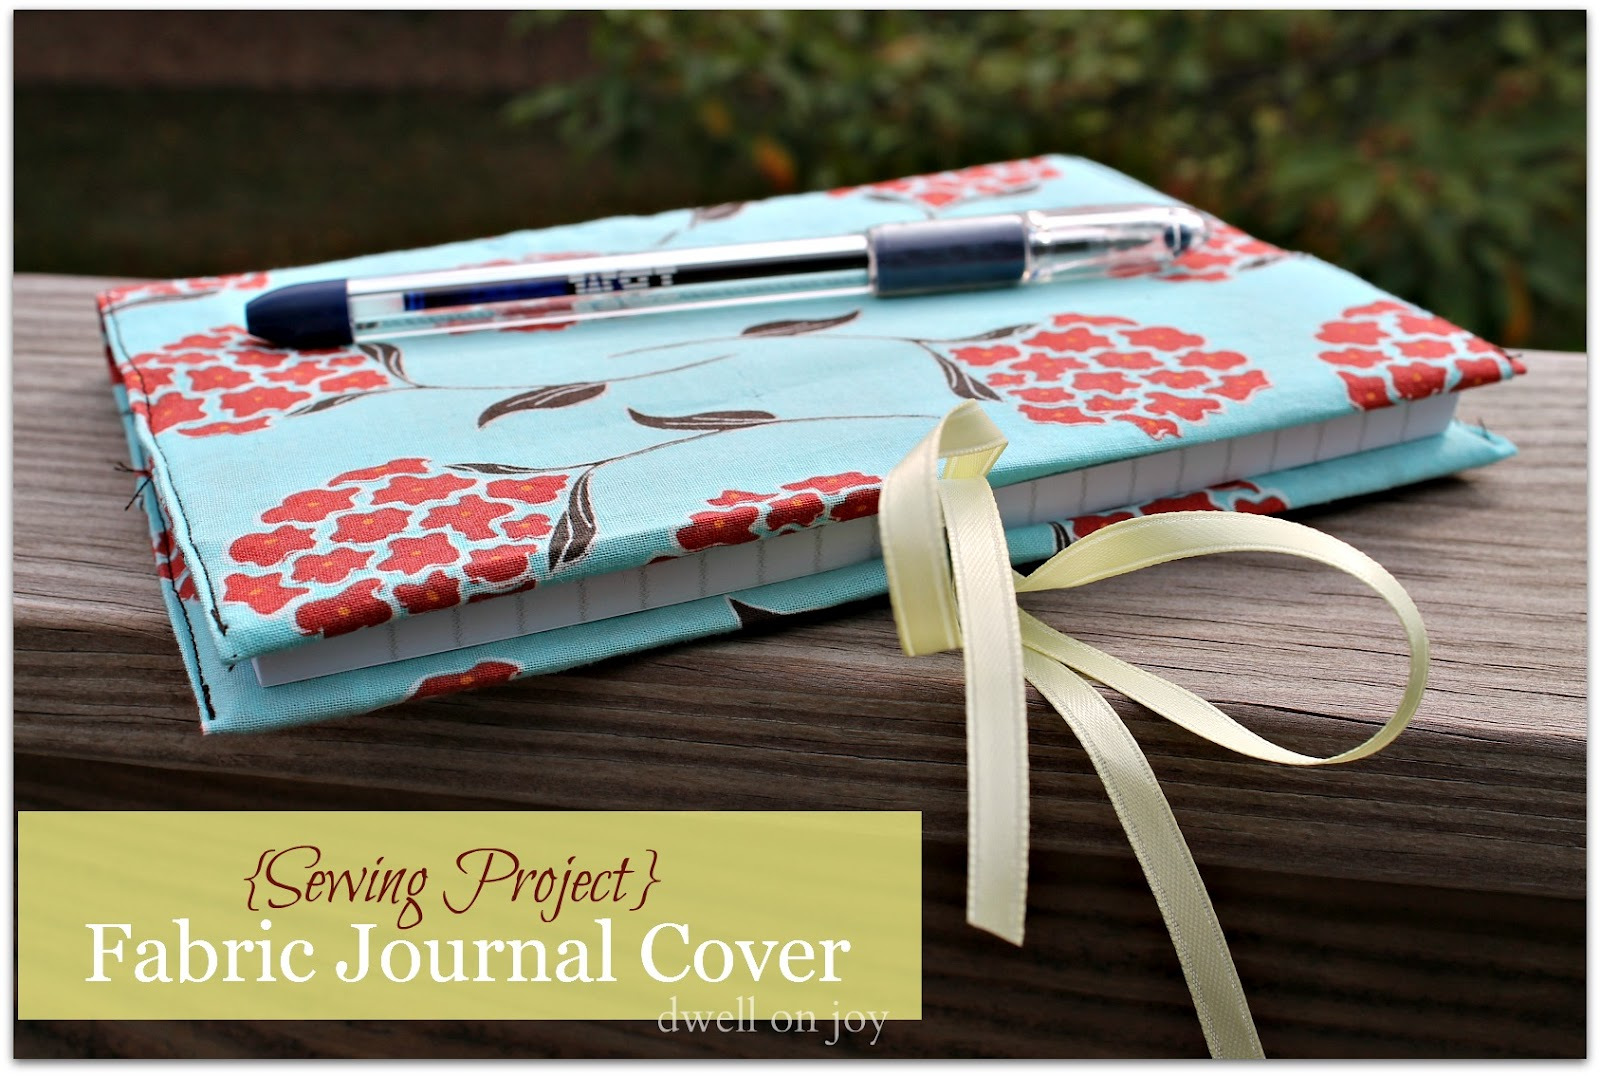 How To Sew Book Cover Tutorial : Sewing project fabric journal cover tutorial dwell on joy